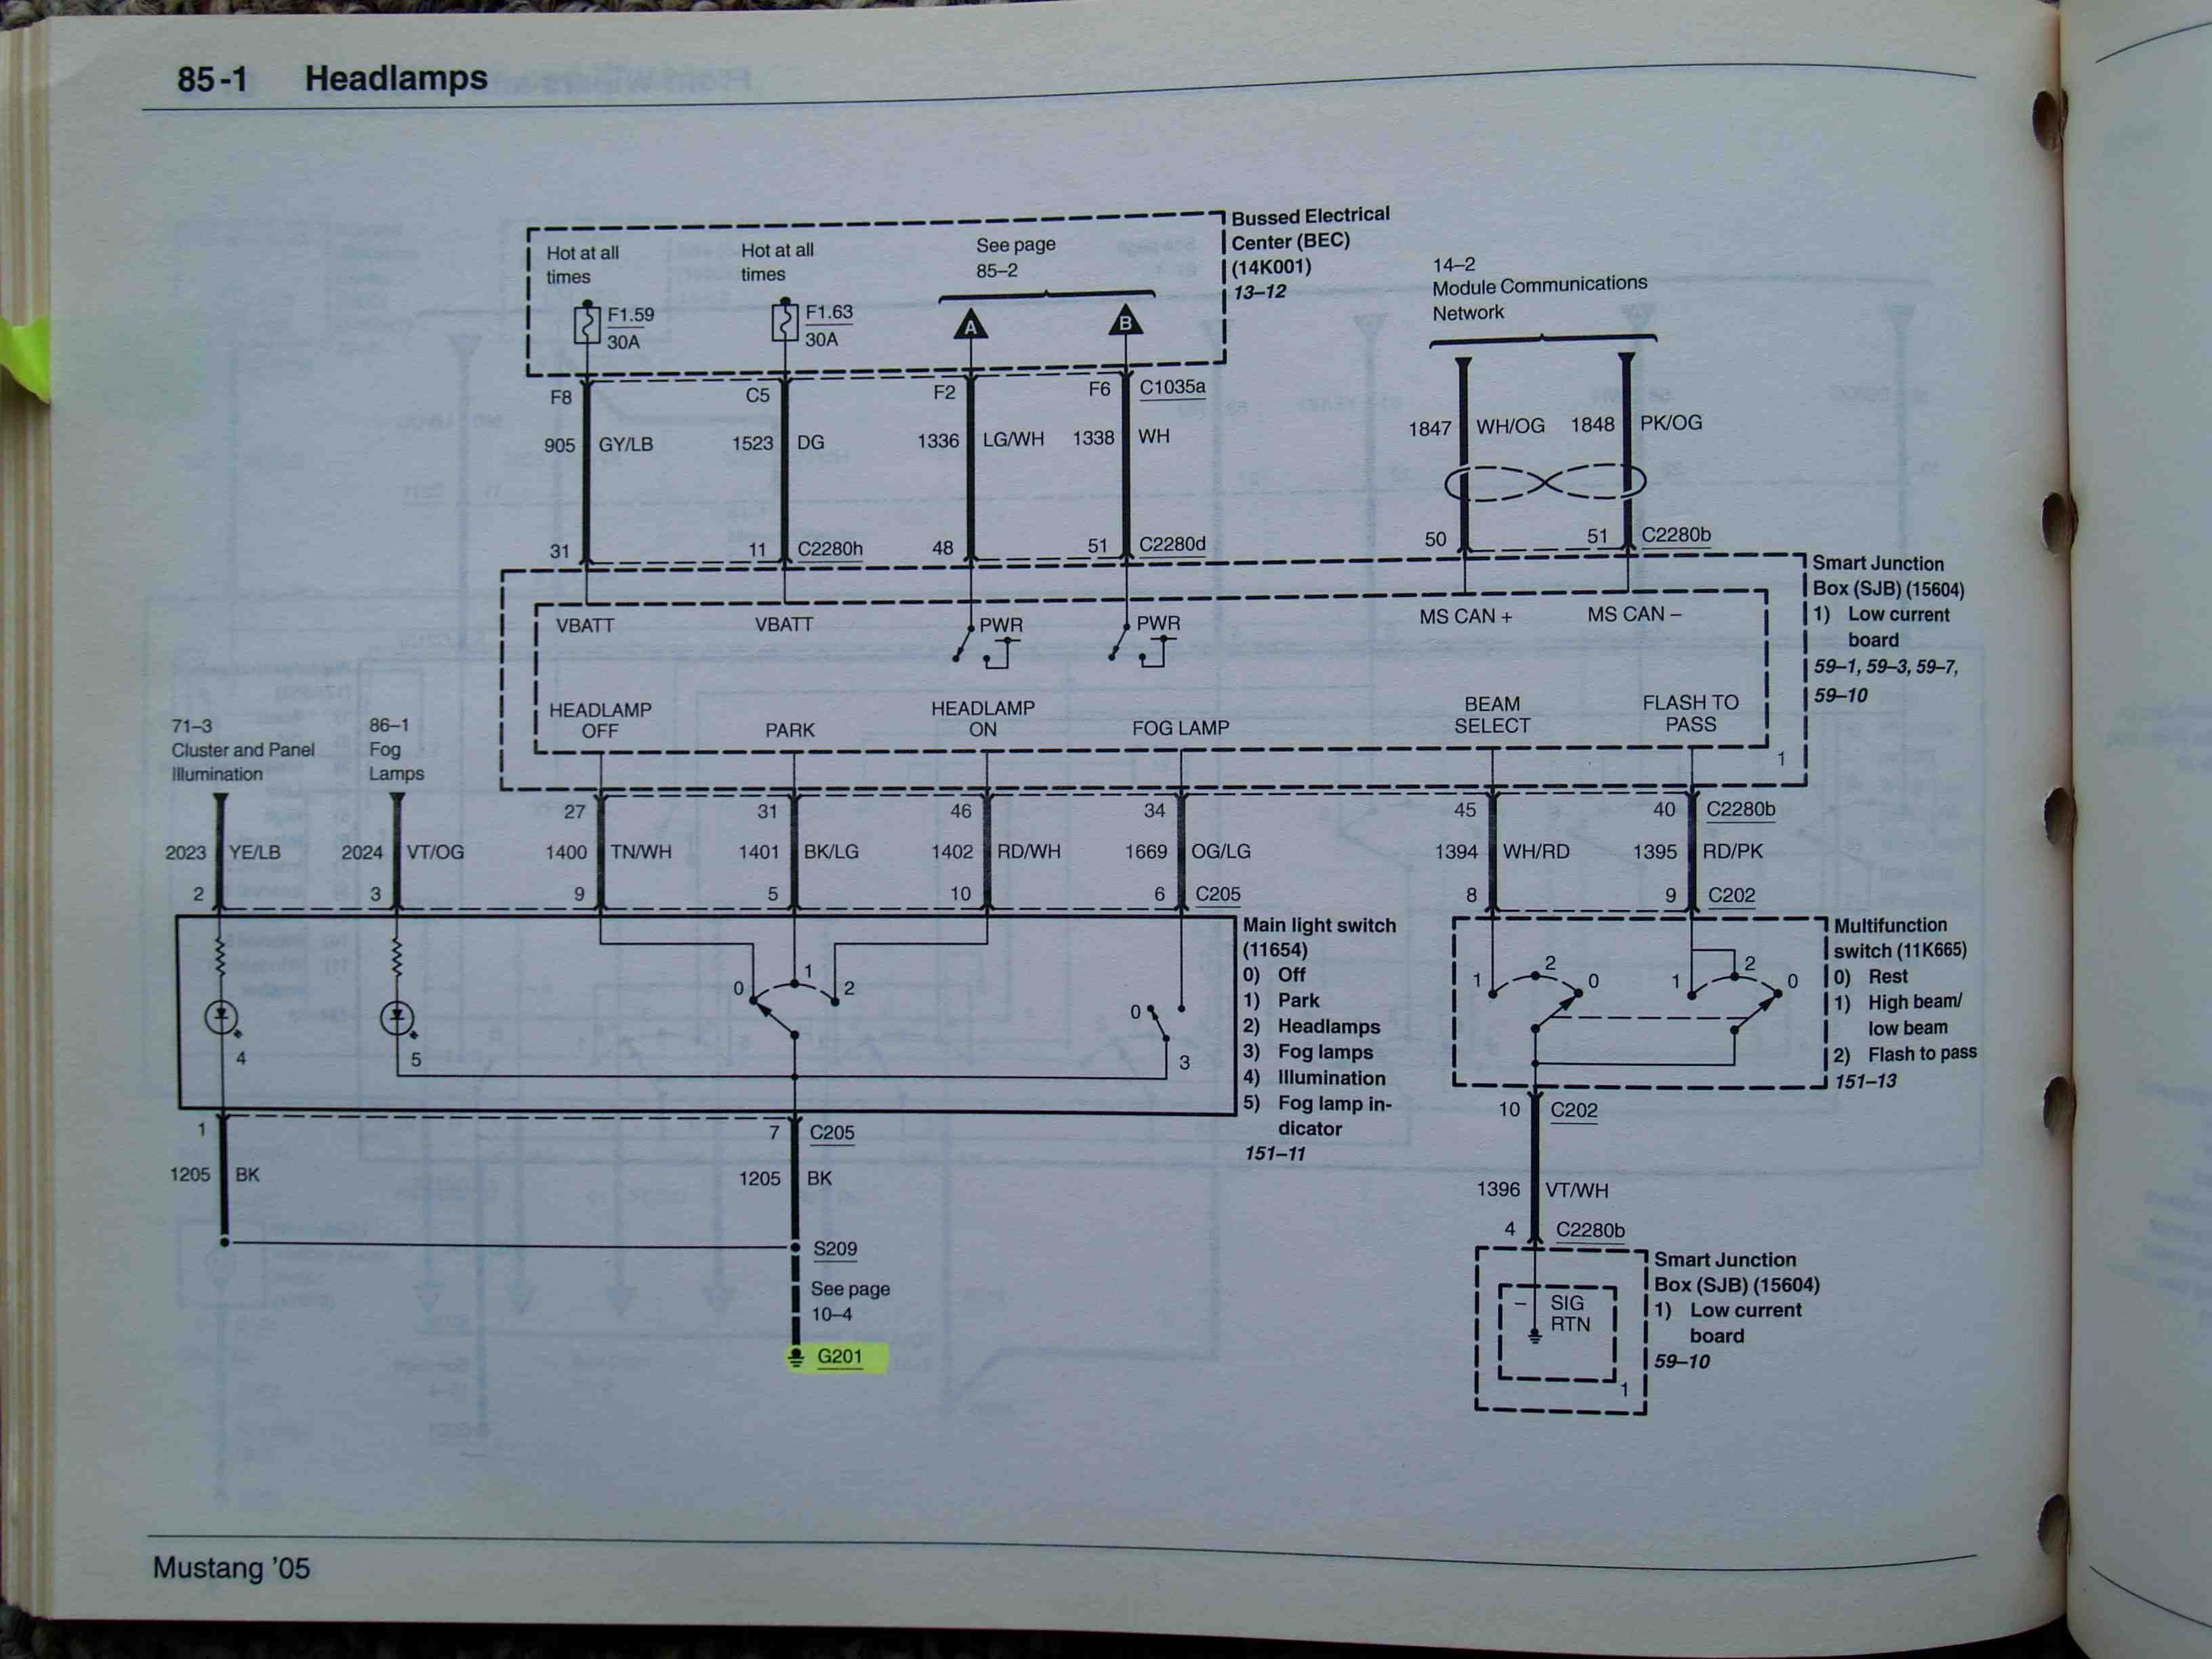 99330d1274386669 2008 gt headlight wiring diagram p5206403 1 2008 gt headlight wiring diagram? ford mustang forum 2008 ford mustang wiring diagrams at honlapkeszites.co